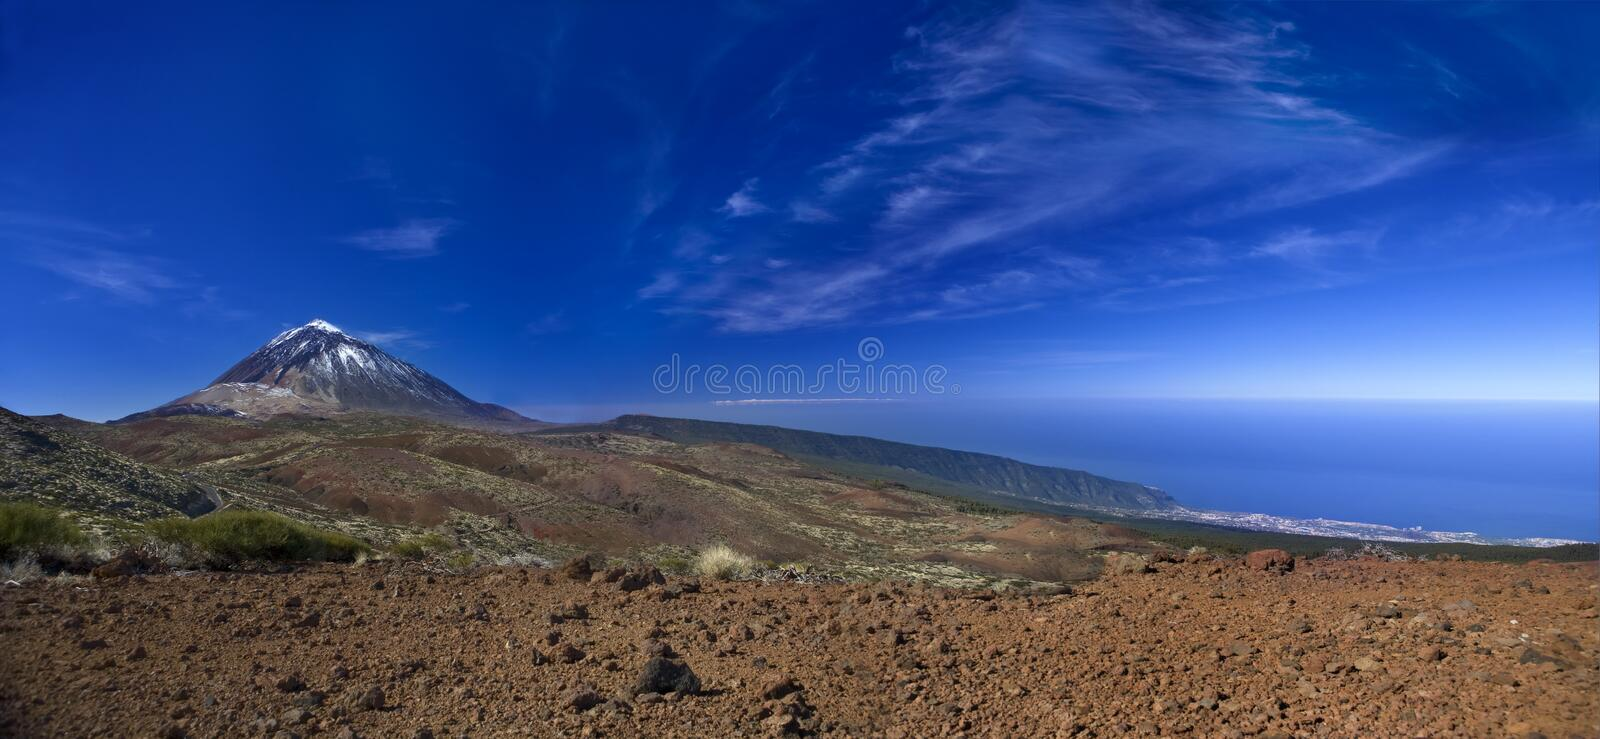 teide blue mountain fotografia stock